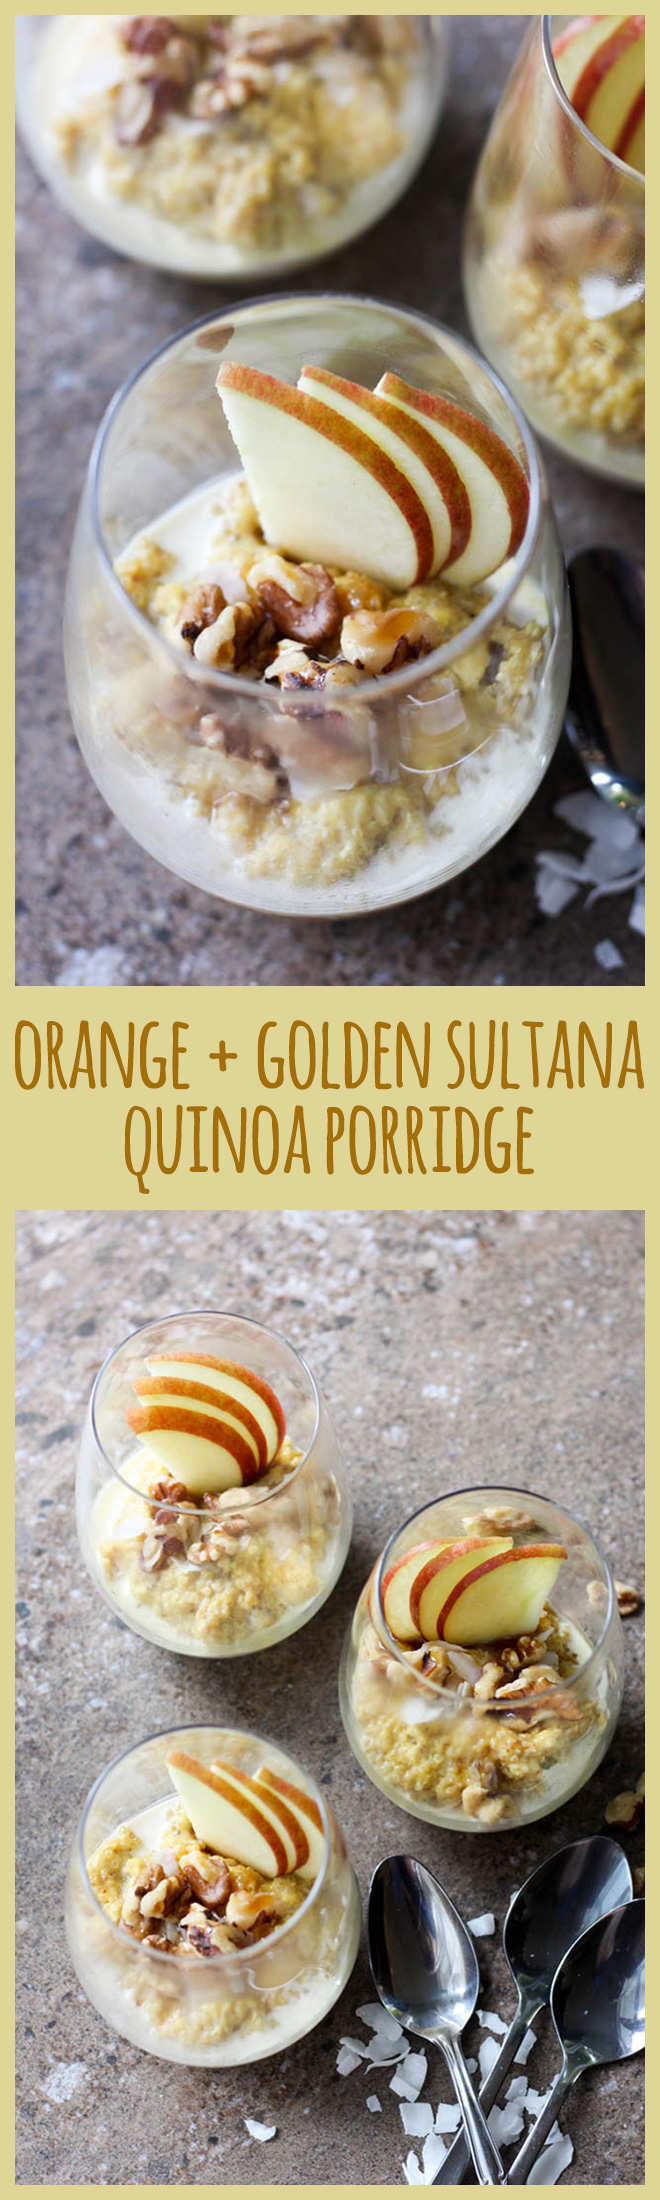 Creamy quinoa porridge with sweet golden sultanas is a comforting and nutritious start to the day.